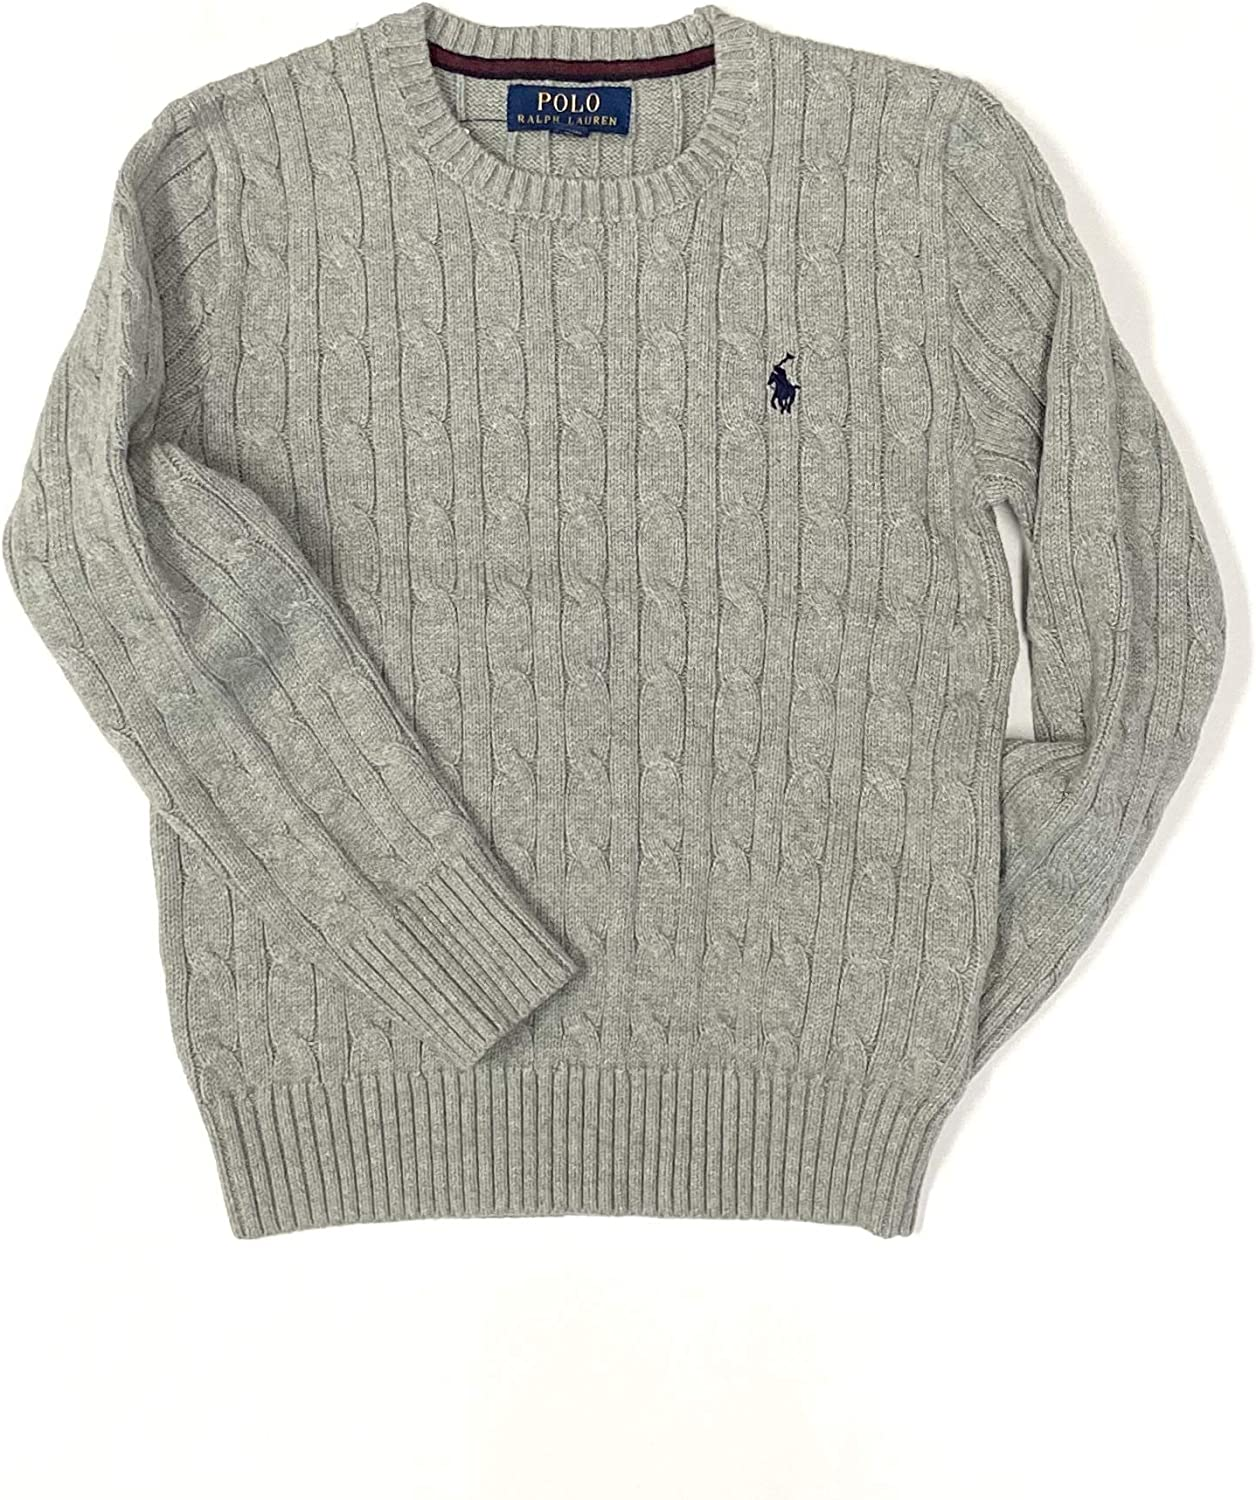 Polo Ralph Lauren Boys Cable Pullover Crew Sweater Size 18-20 (X-Large) Grey